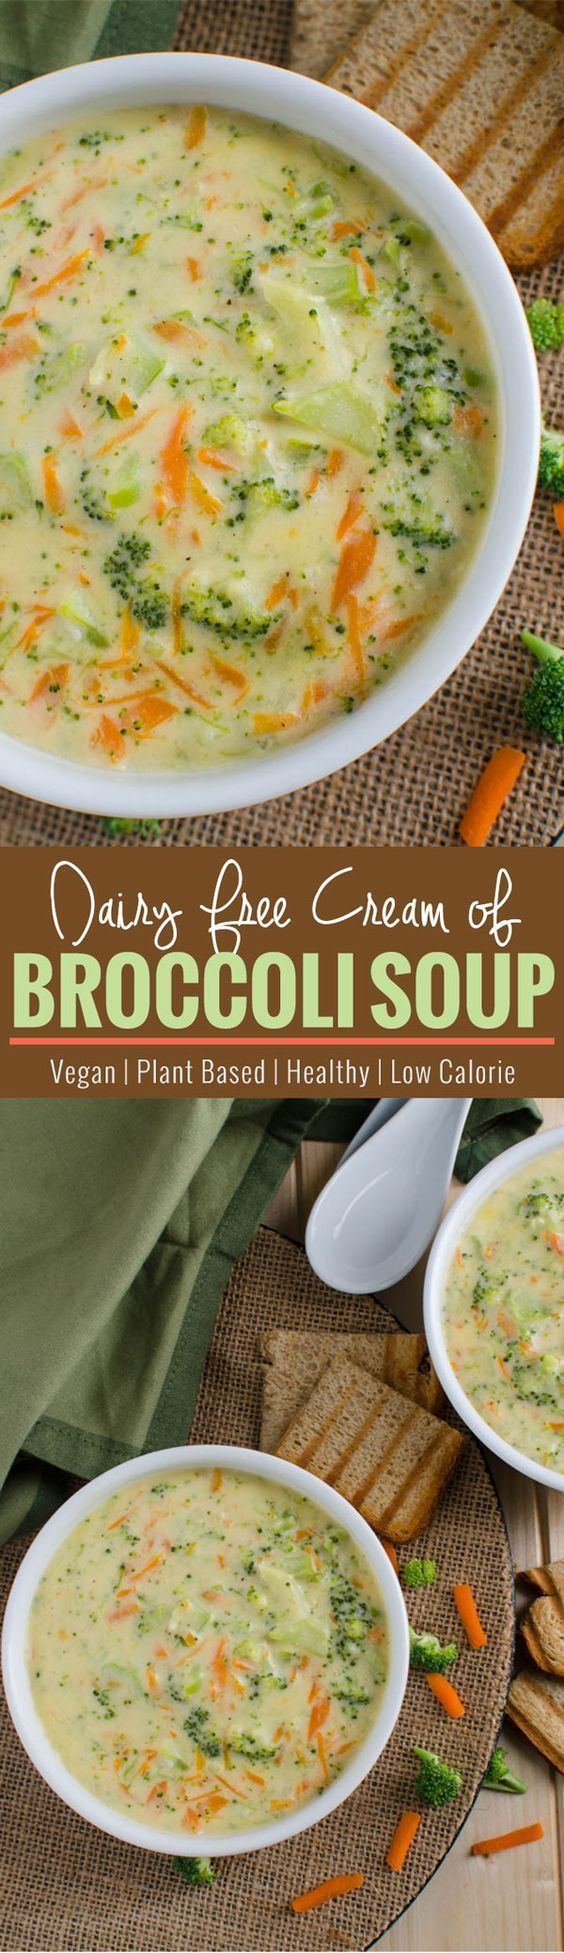 The Ultimate Pinterest Party, Week 130 Healthy broccoli soup - prepared using all healthy & clean ingredients. It is also vegan, plant based and a low calorie soup. | watchehatueat.com